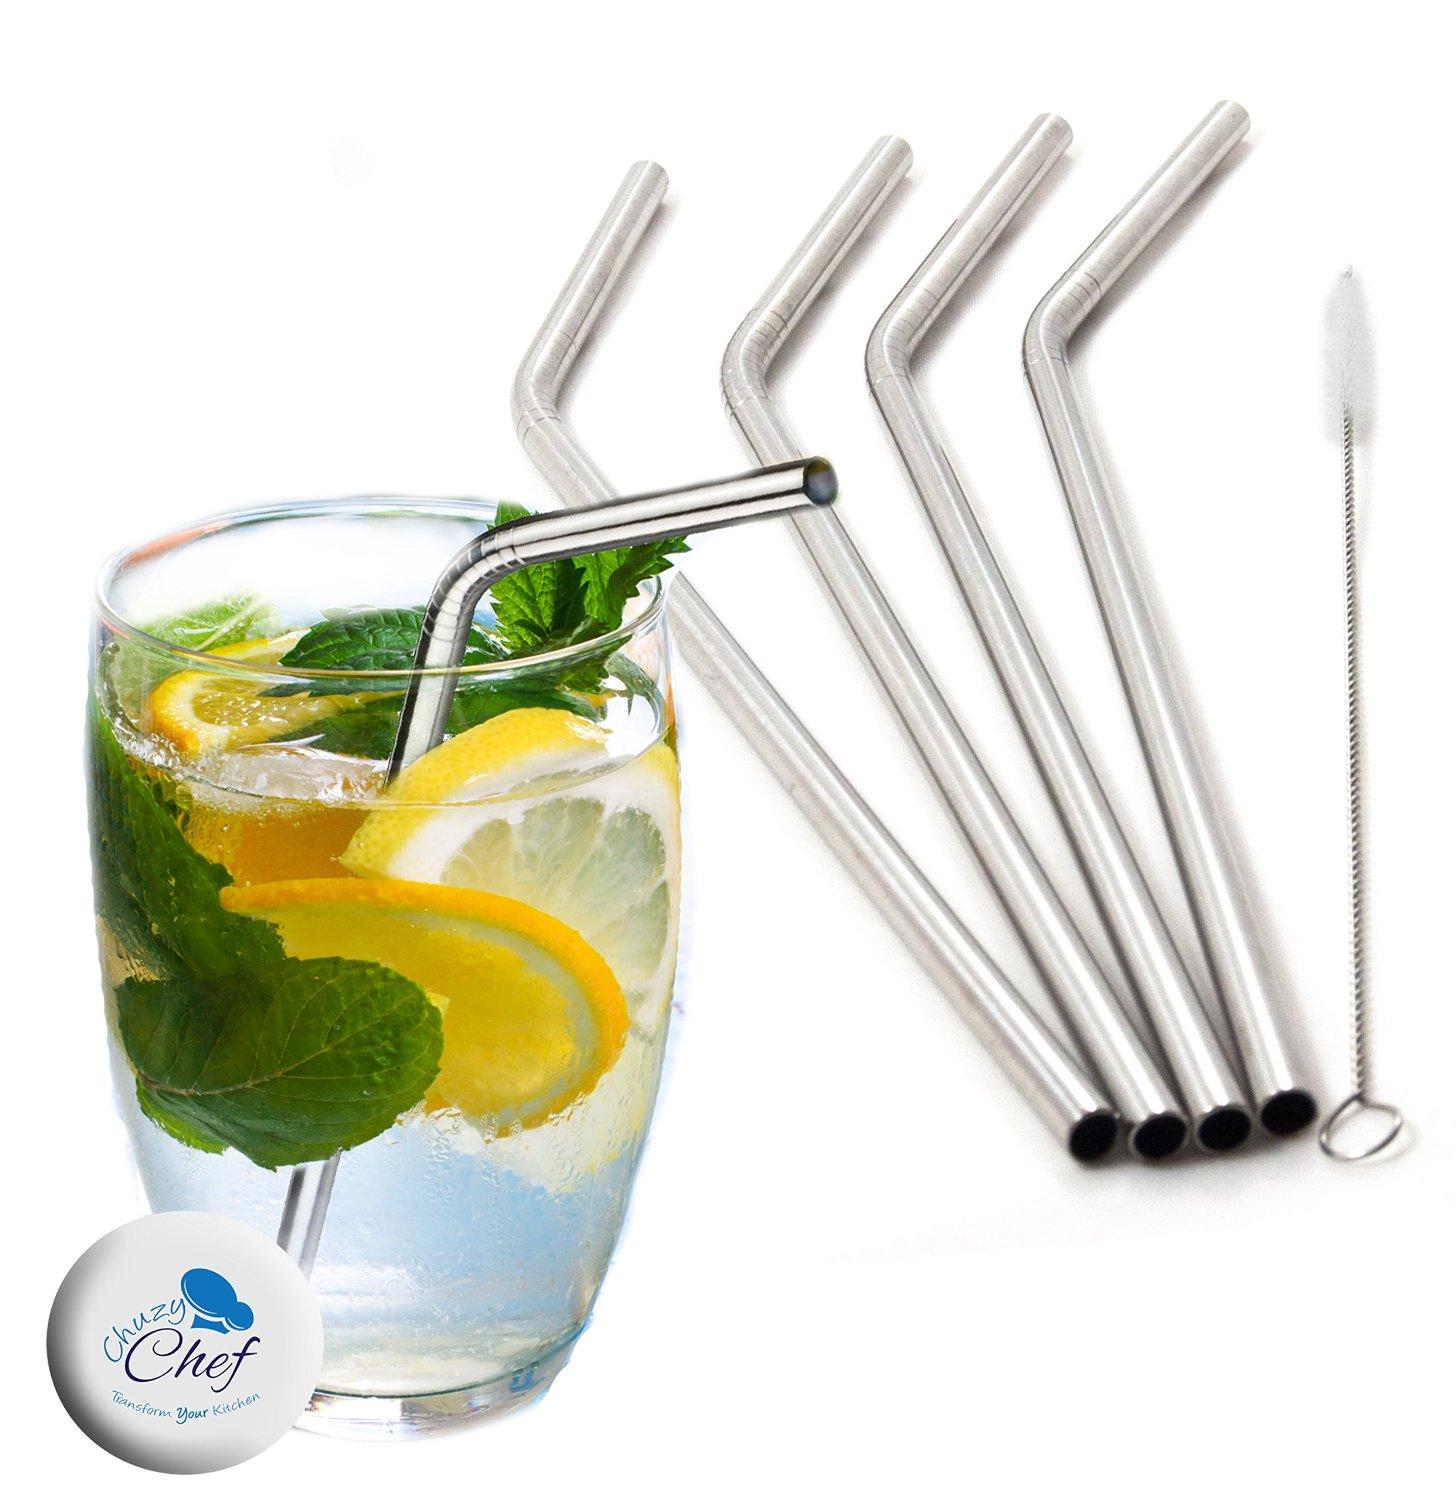 Chuzy Chef  Stainless Steel Straws Set Of 4 with Free Cleaning Brush 2861958